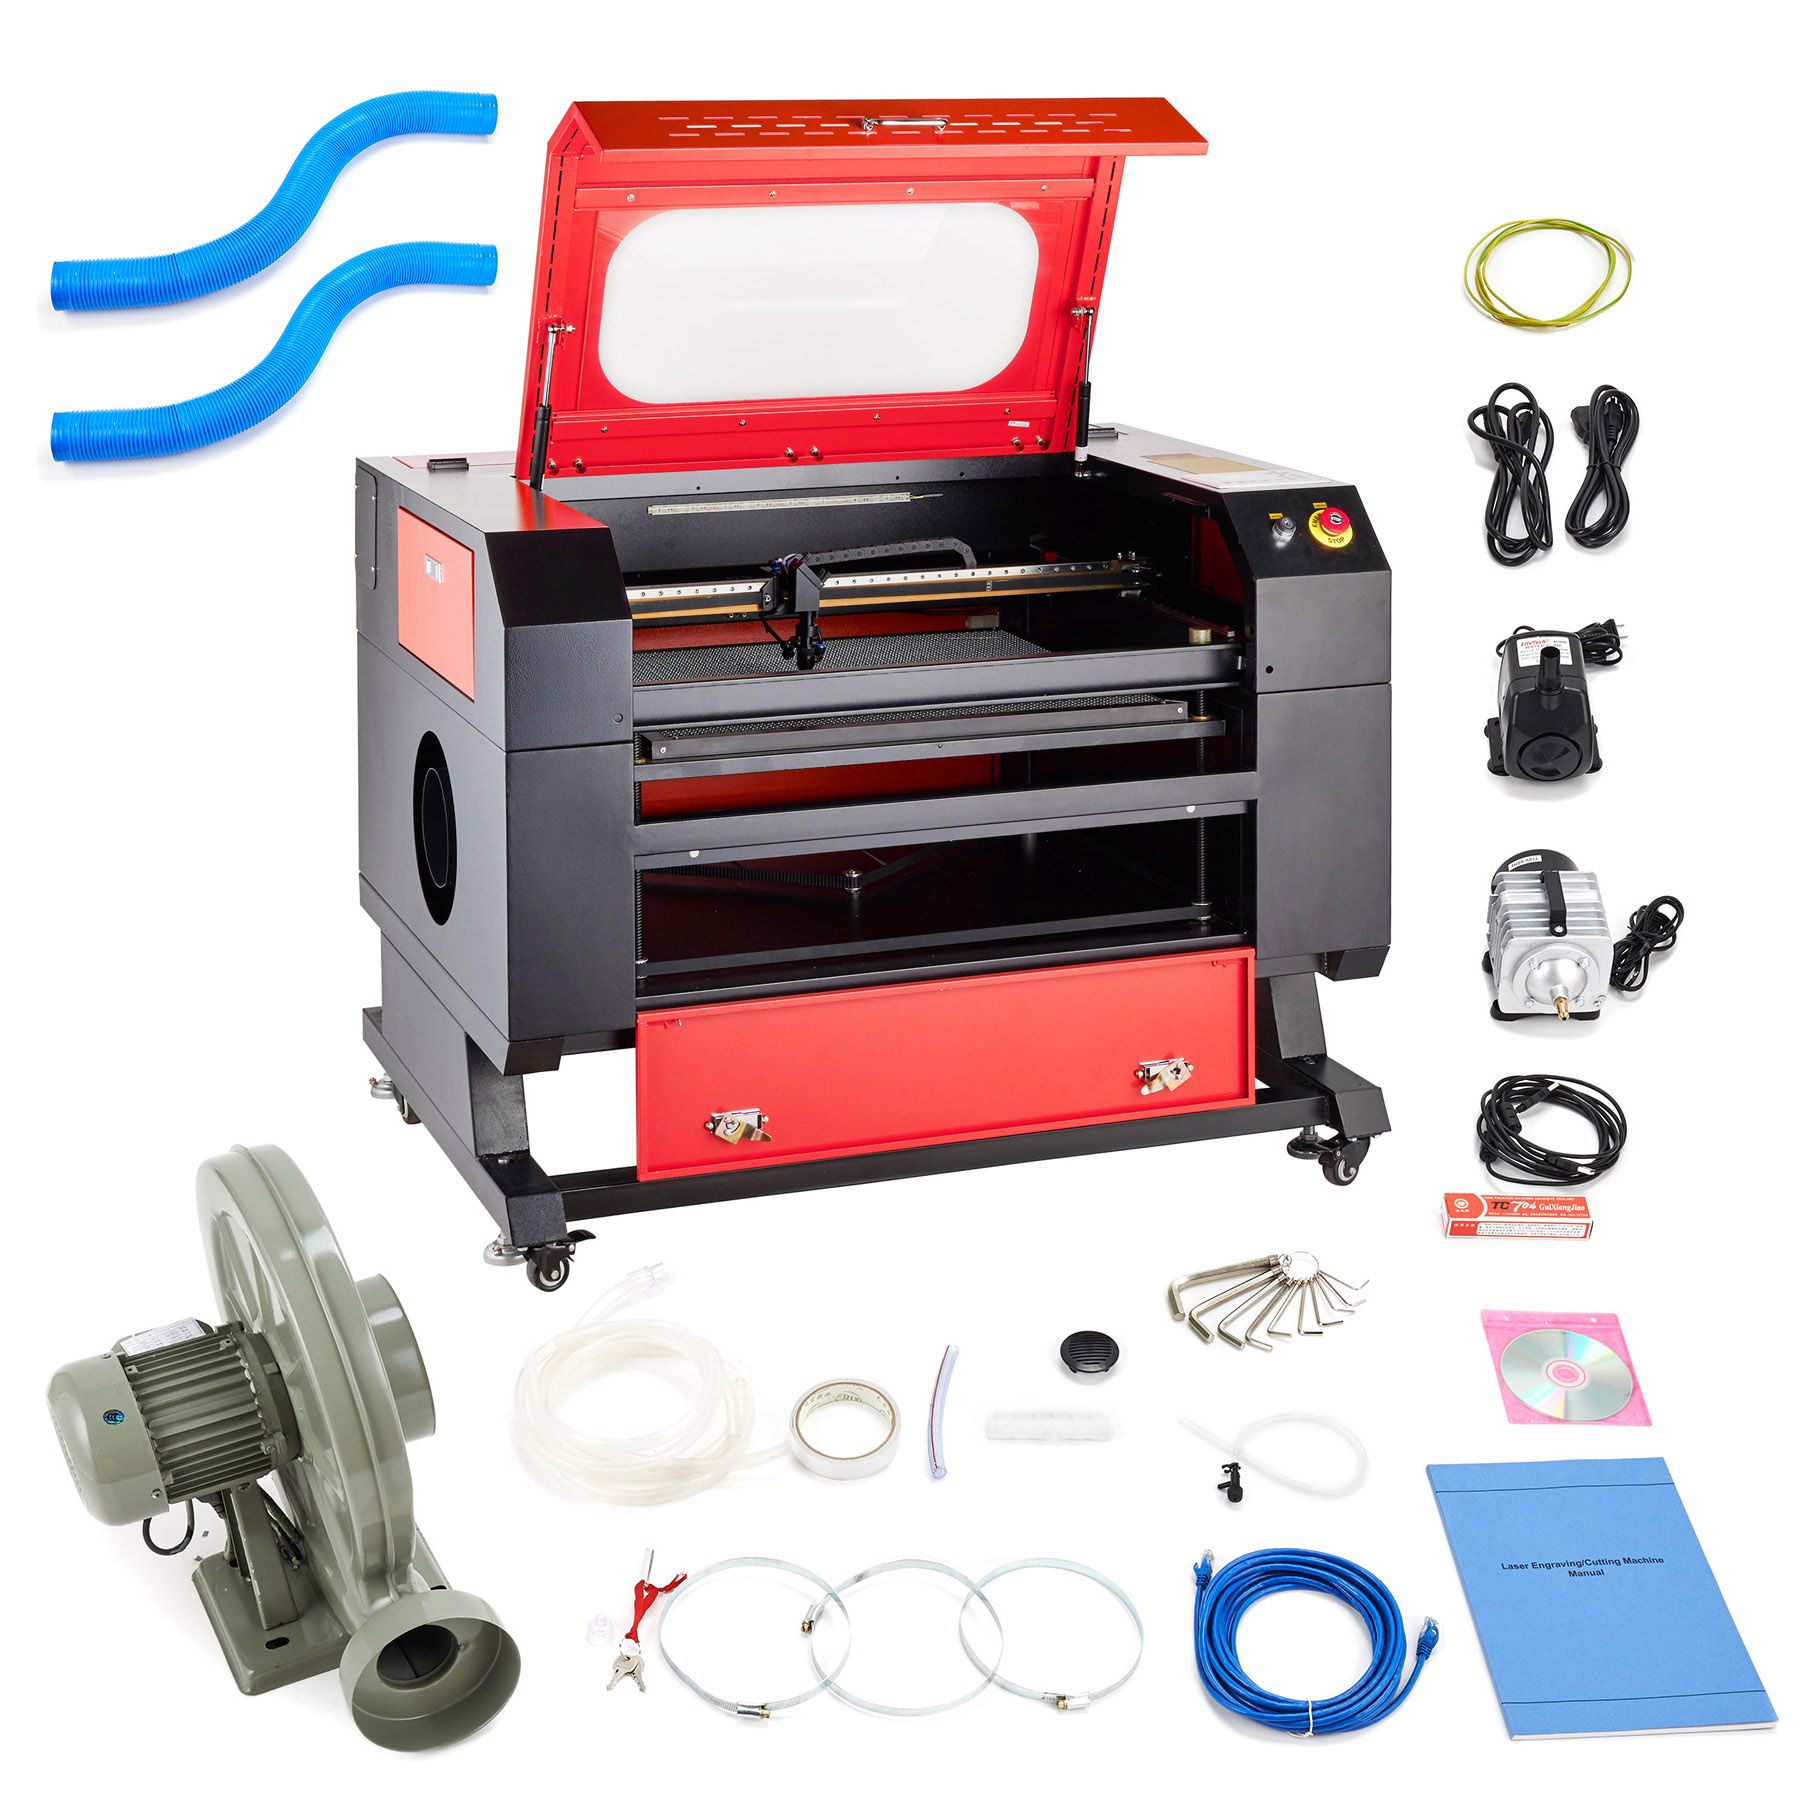 60W 110V CO2 Laser Engraving Machine Engraver Cutter with USB Interface